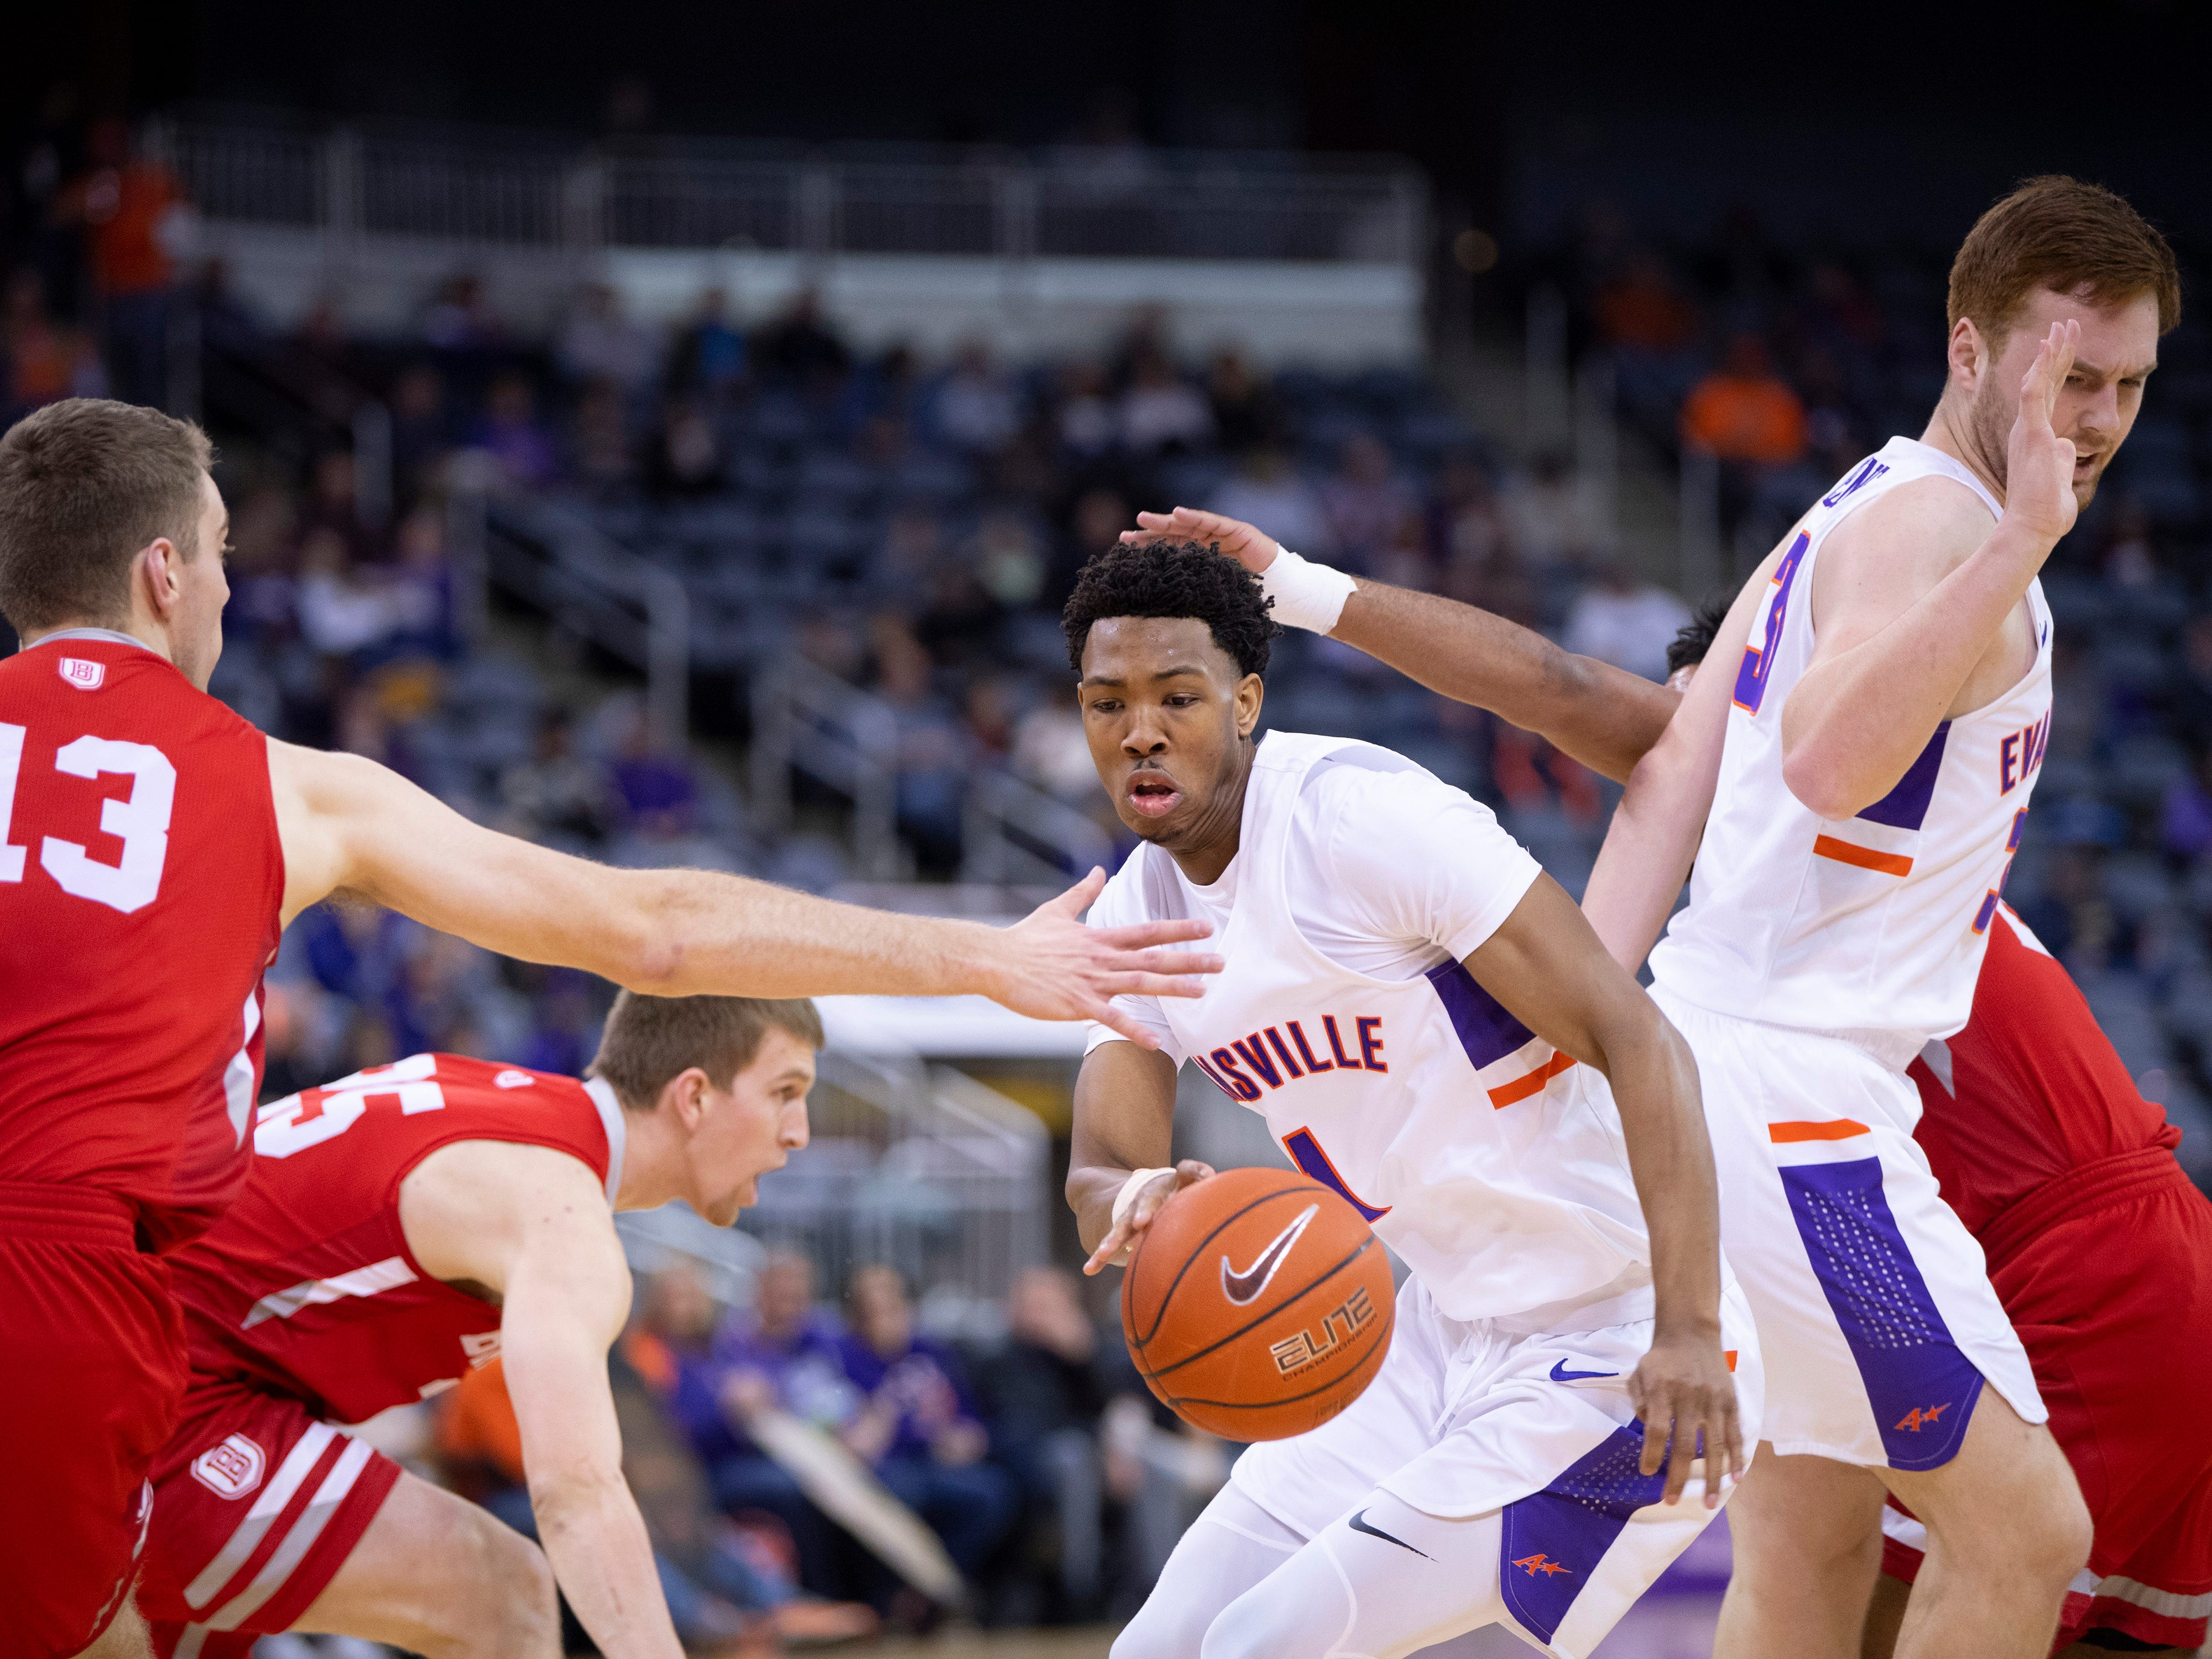 Evansville's Marty Hill (1) maneuvers through the defense of Bradley's Nate Kennell (25) and Luuk van Bree (13) during their game at the Ford Center Wednesday night.